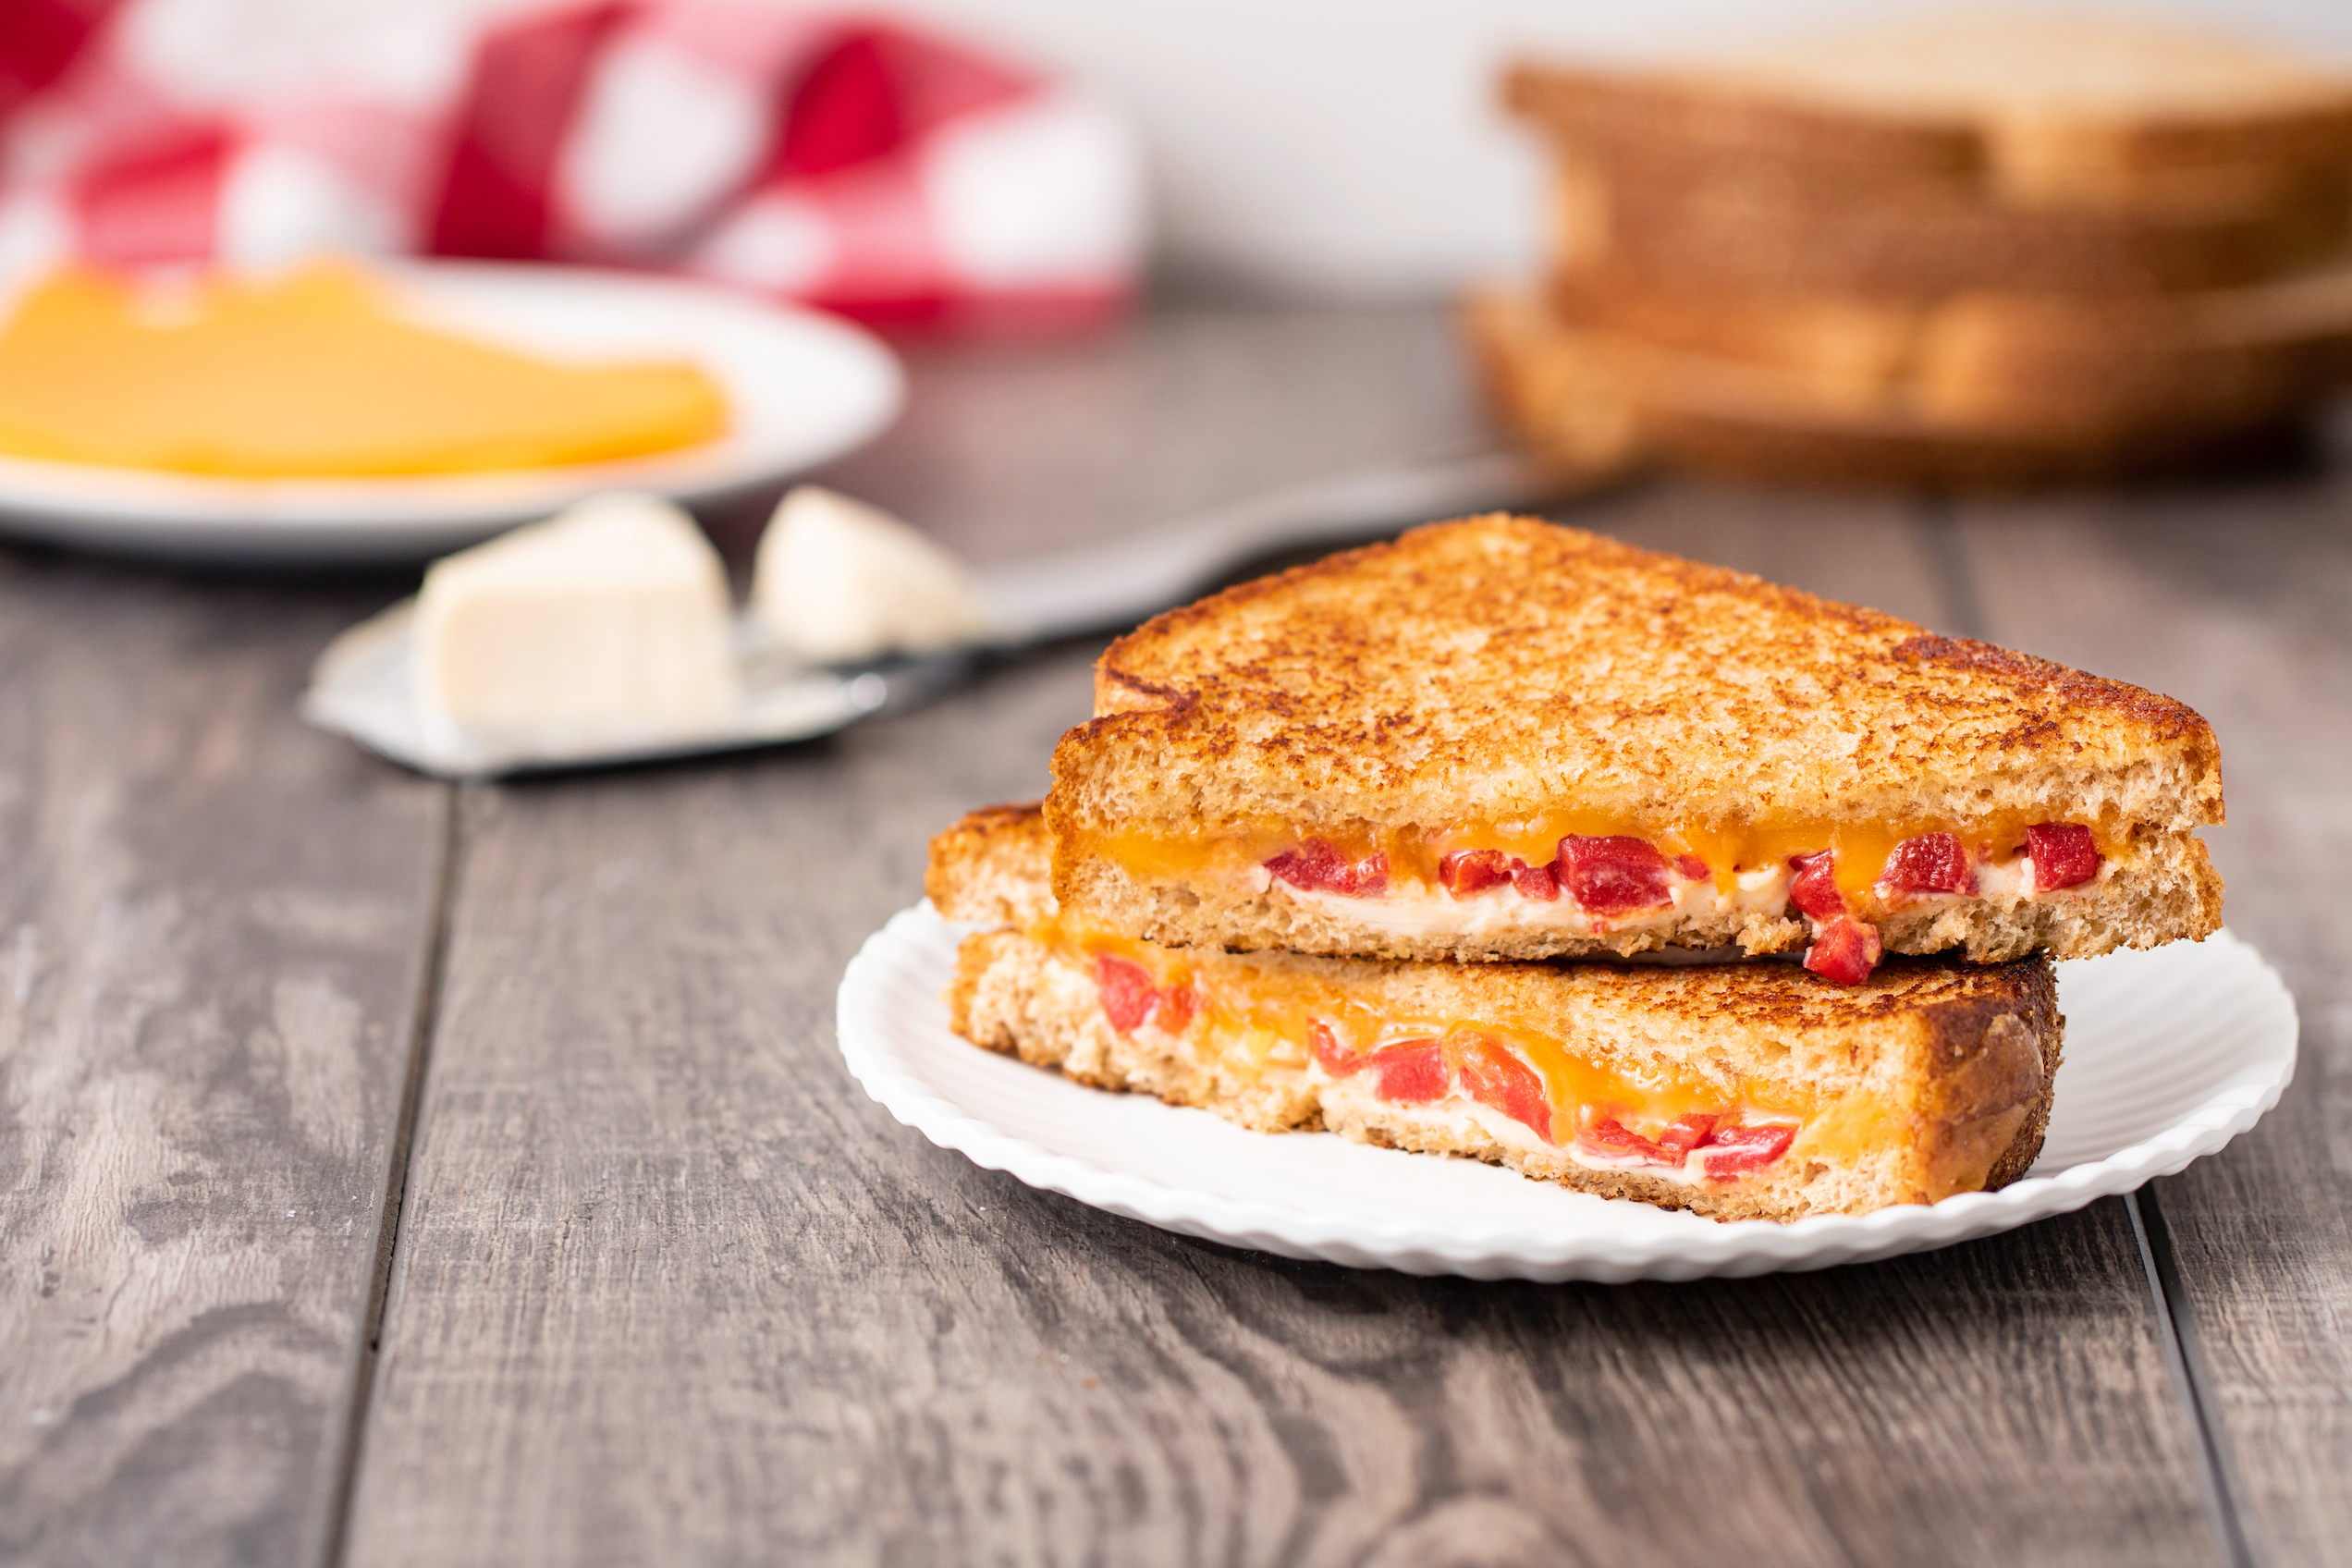 Fast Amp Fancy Grilled Cheese Hungry Girl